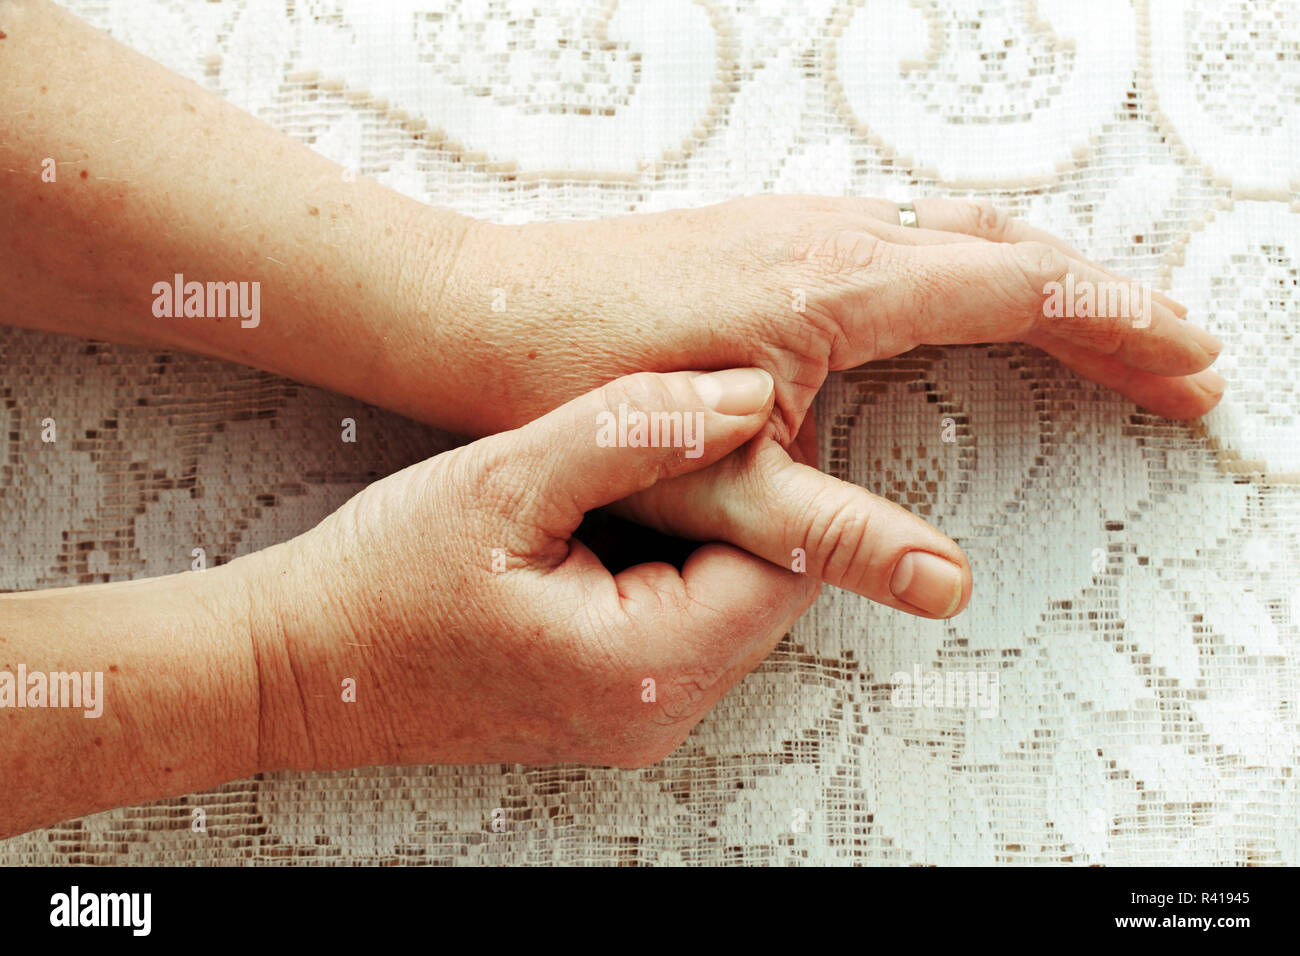 a woman has pain in the fingers,hands,and joints - Stock Image